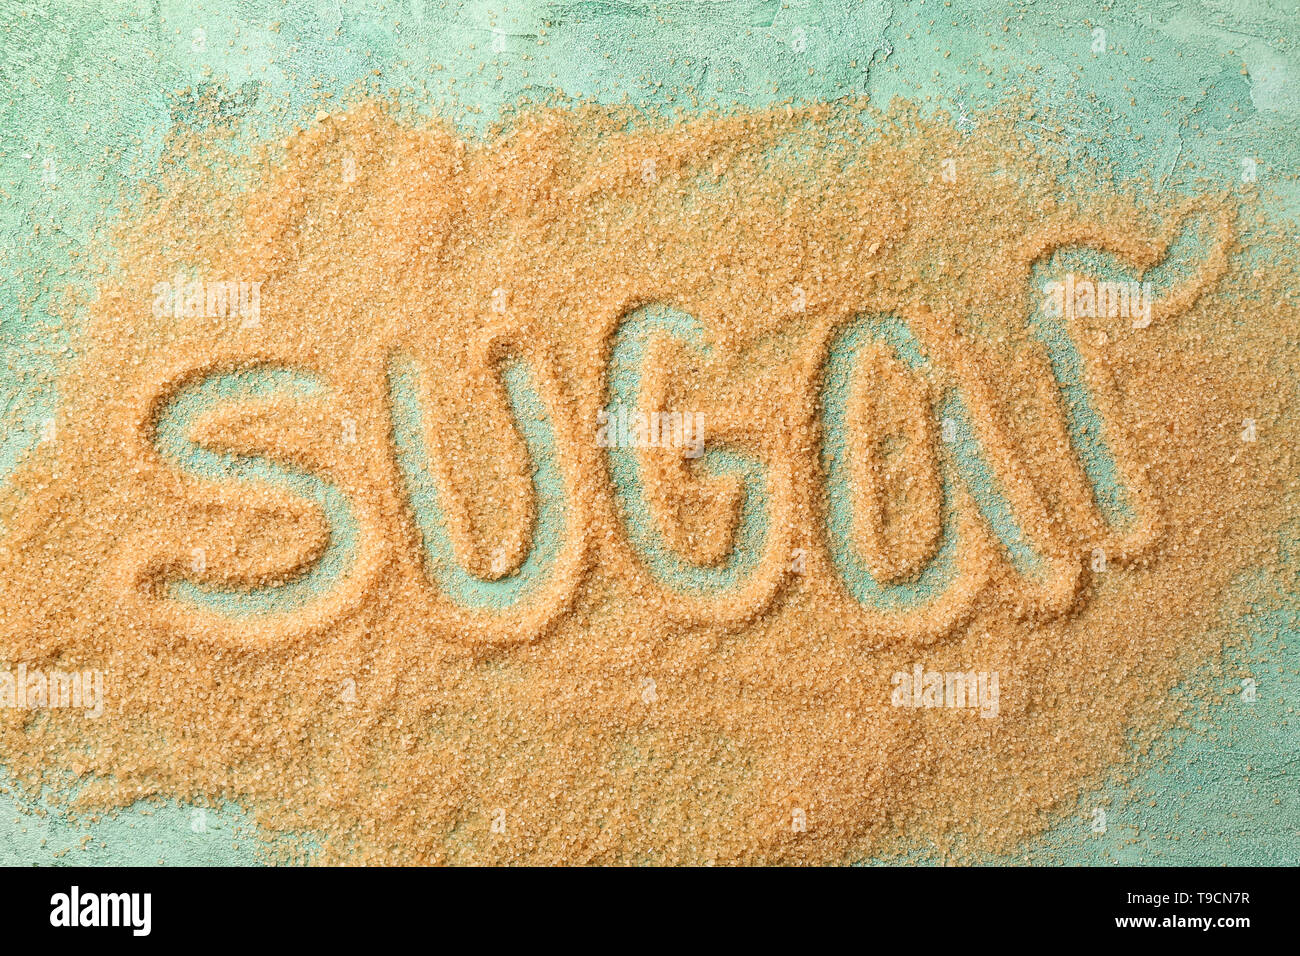 Composition with word Sugar on color background - Stock Image